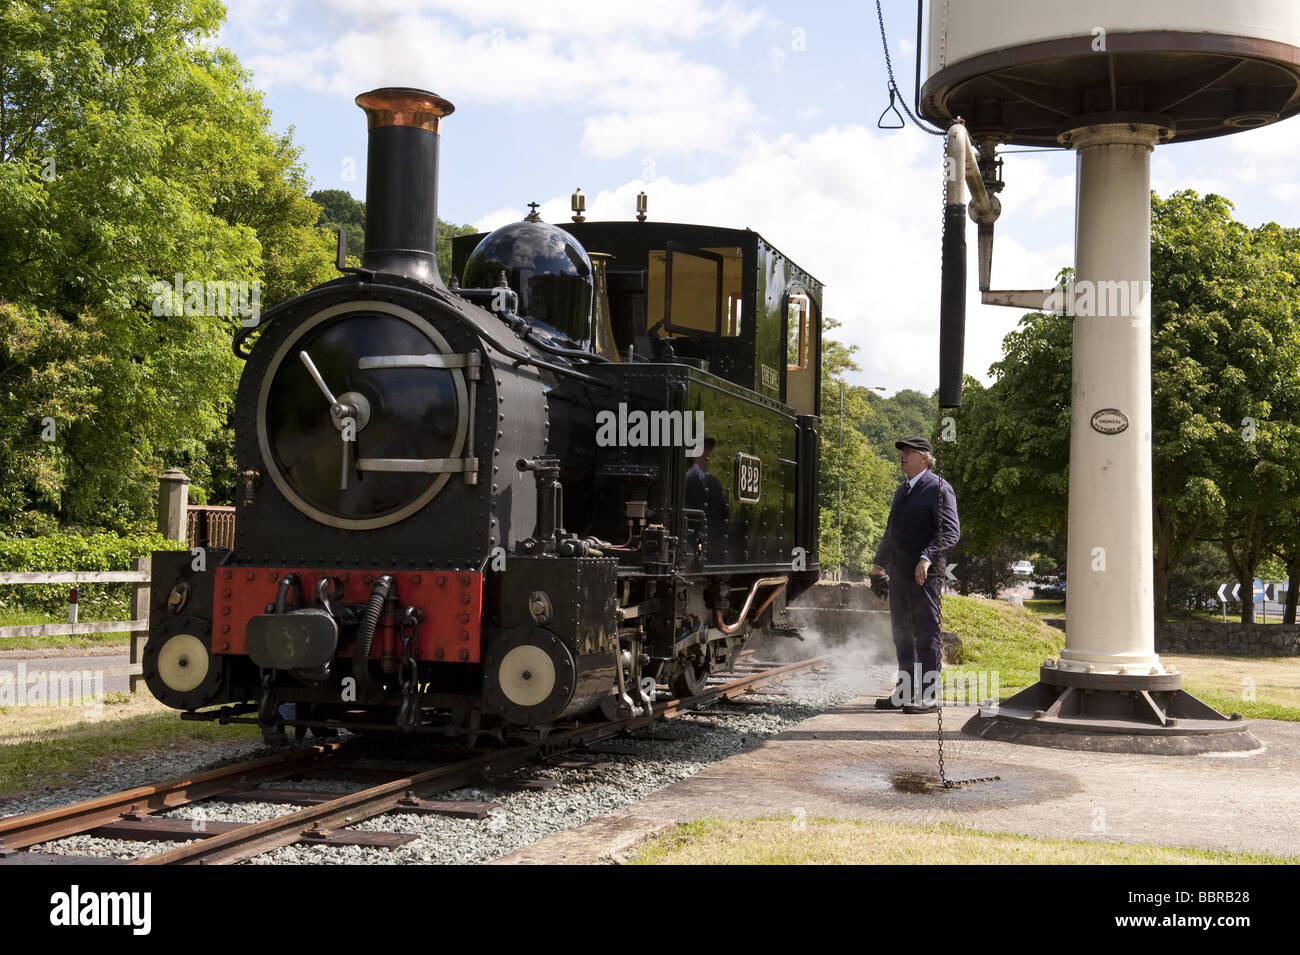 Steam Engine 'Earl' filling up with water at station platform water tower on working narrow gauge railway - Stock Image